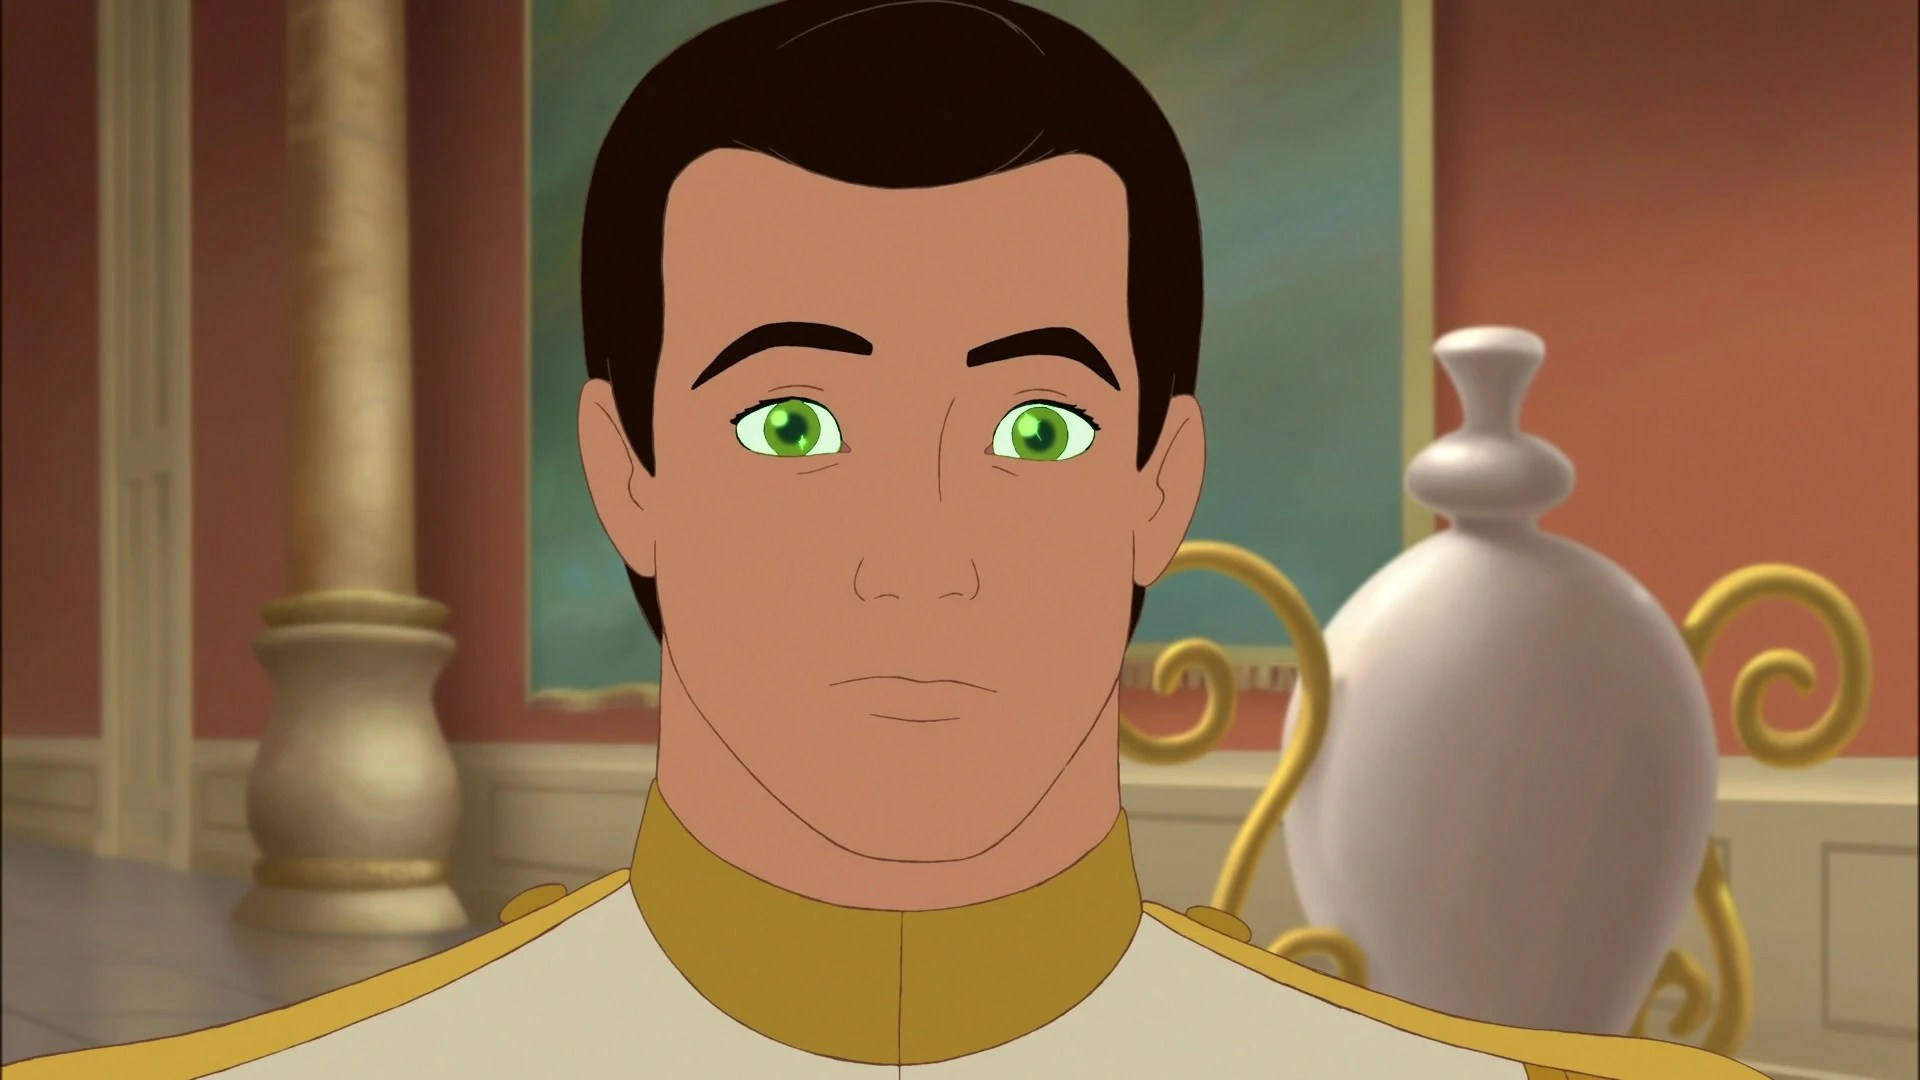 Image Prince Charming A Twist In Timejpg Disney